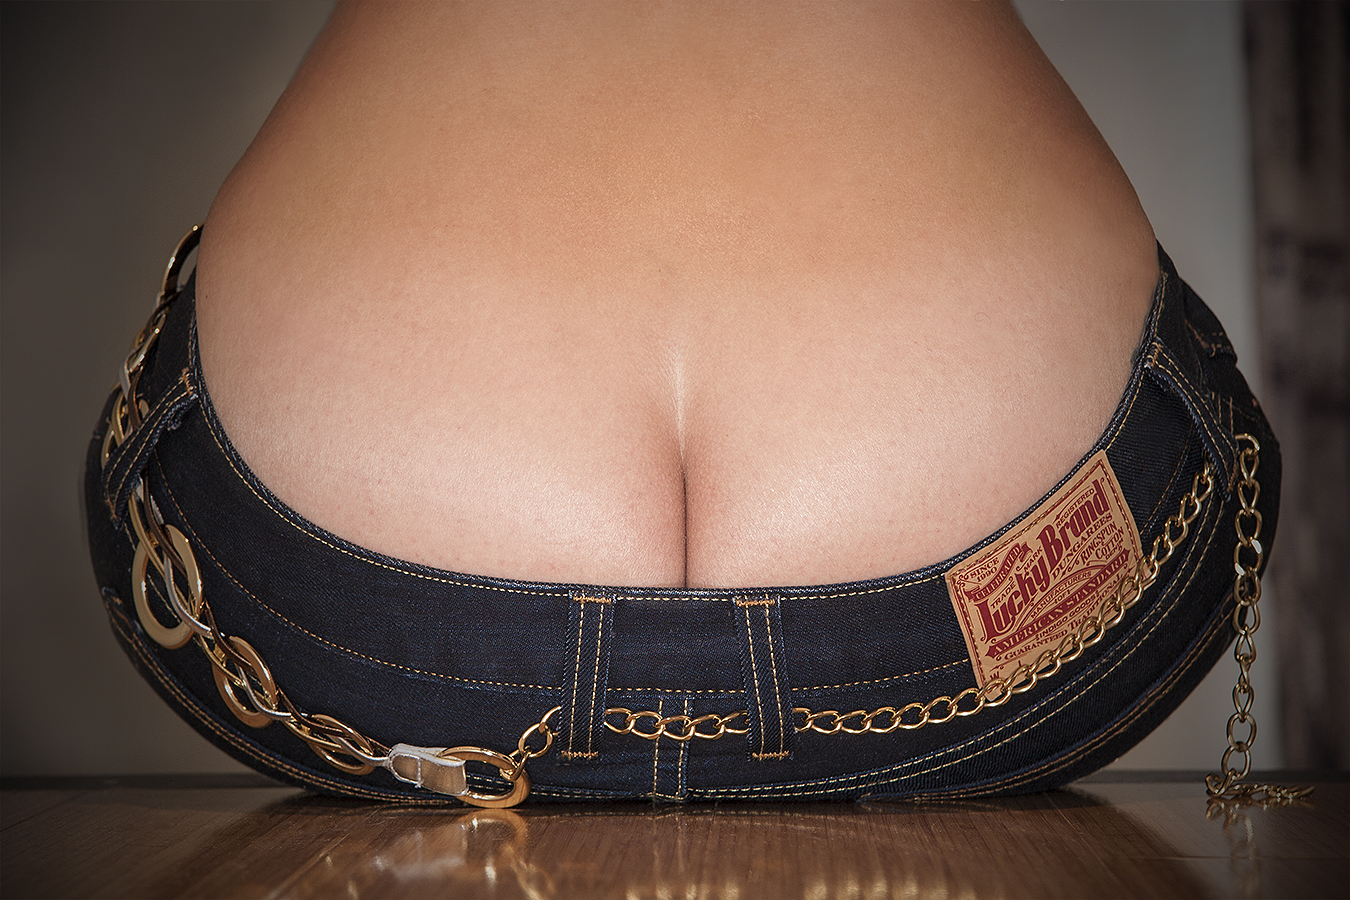 Tony_Ward_Studio_Lucky_Brand_Jeans_bodyscape_erotica_beautiful_butt_shapely_fit